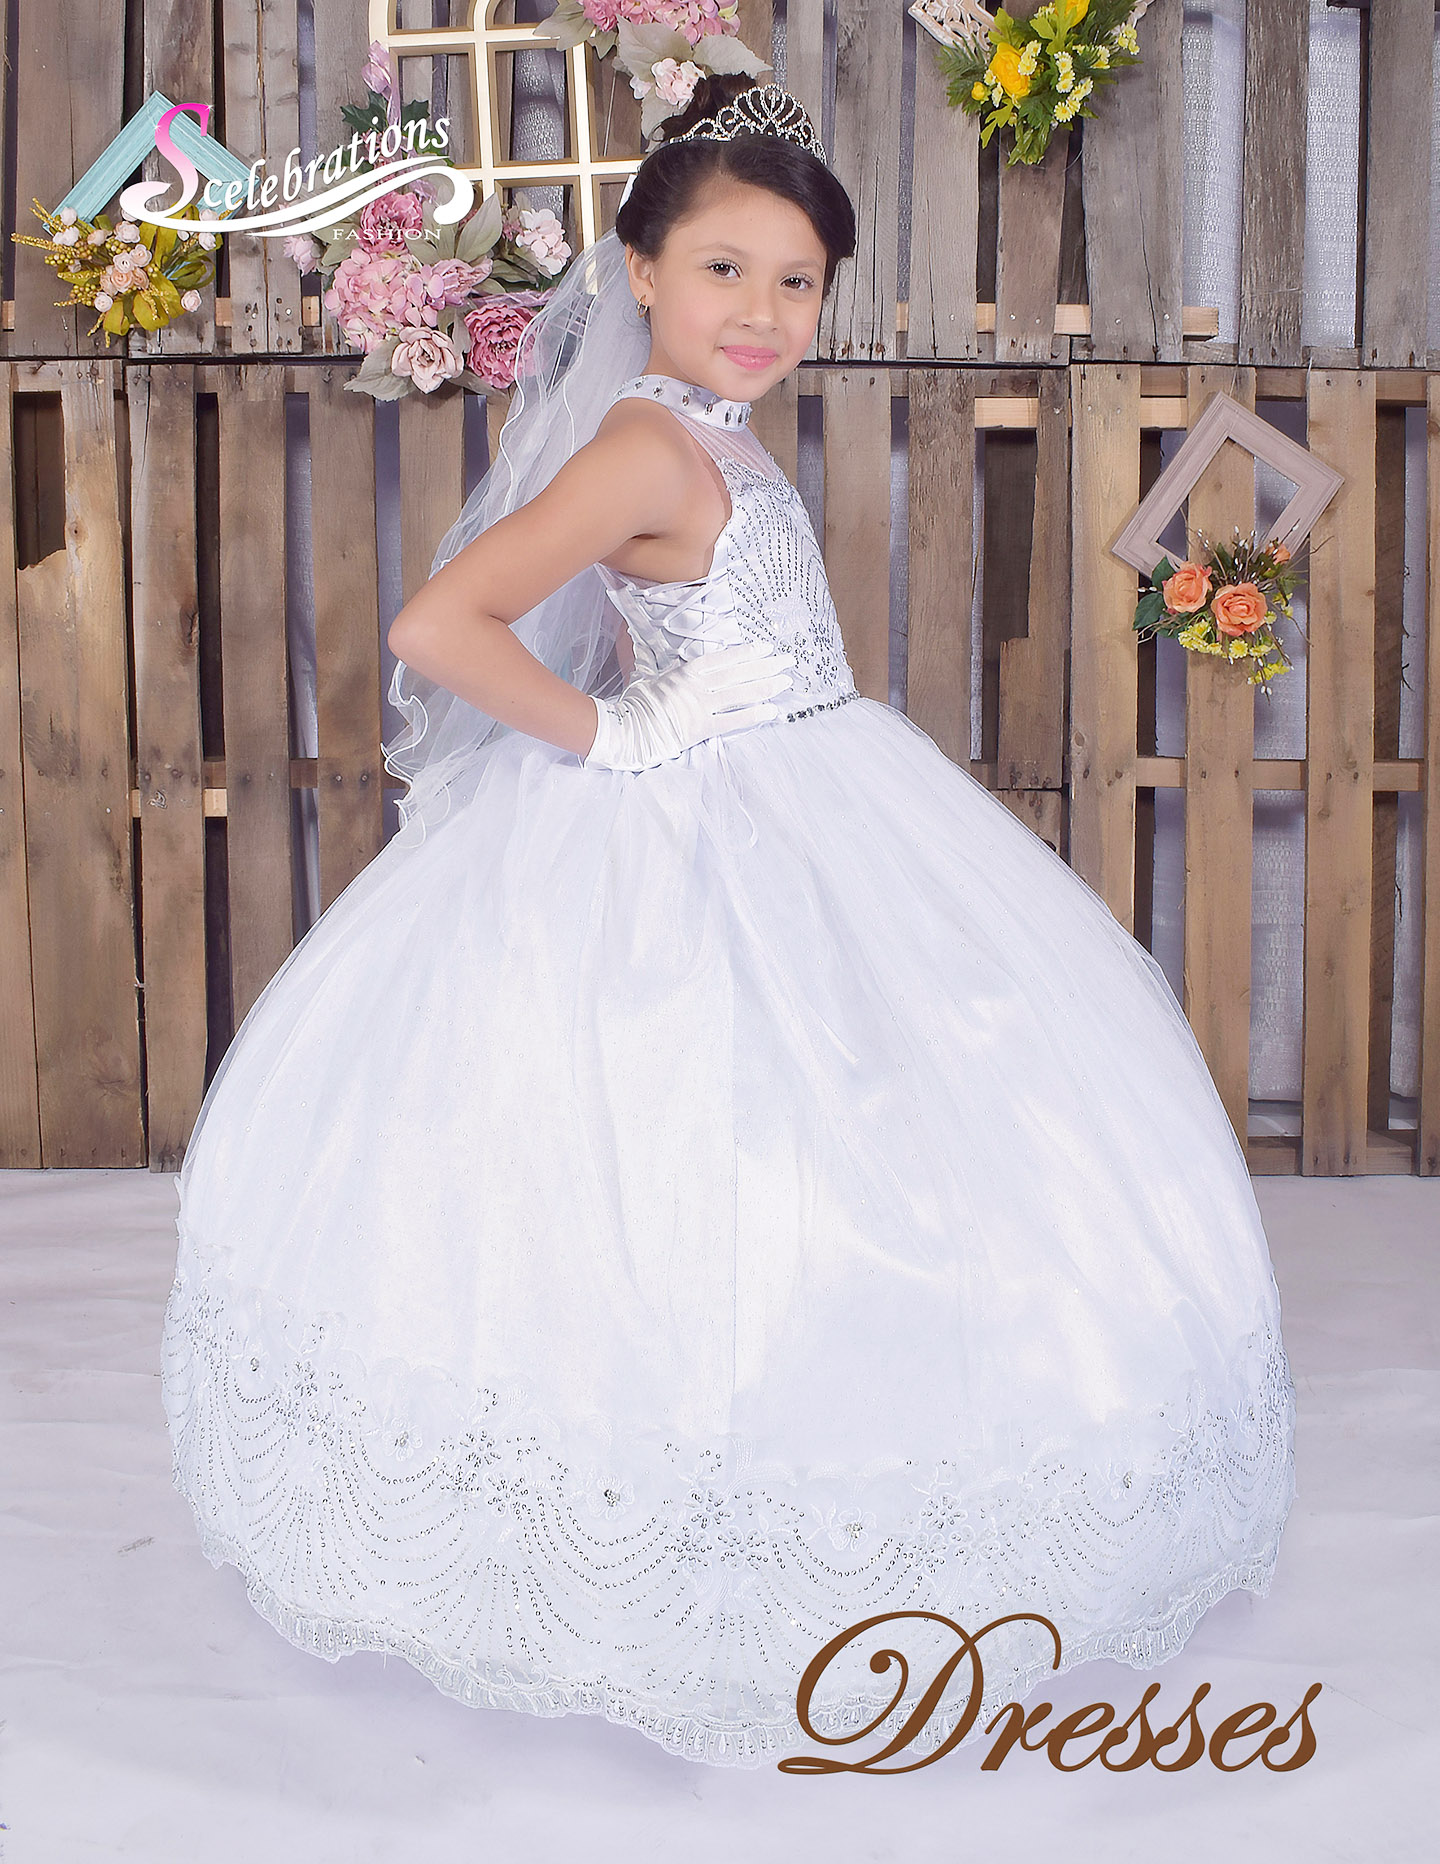 FIRST COMMUNION DRESSES 2018 - Scelebrations